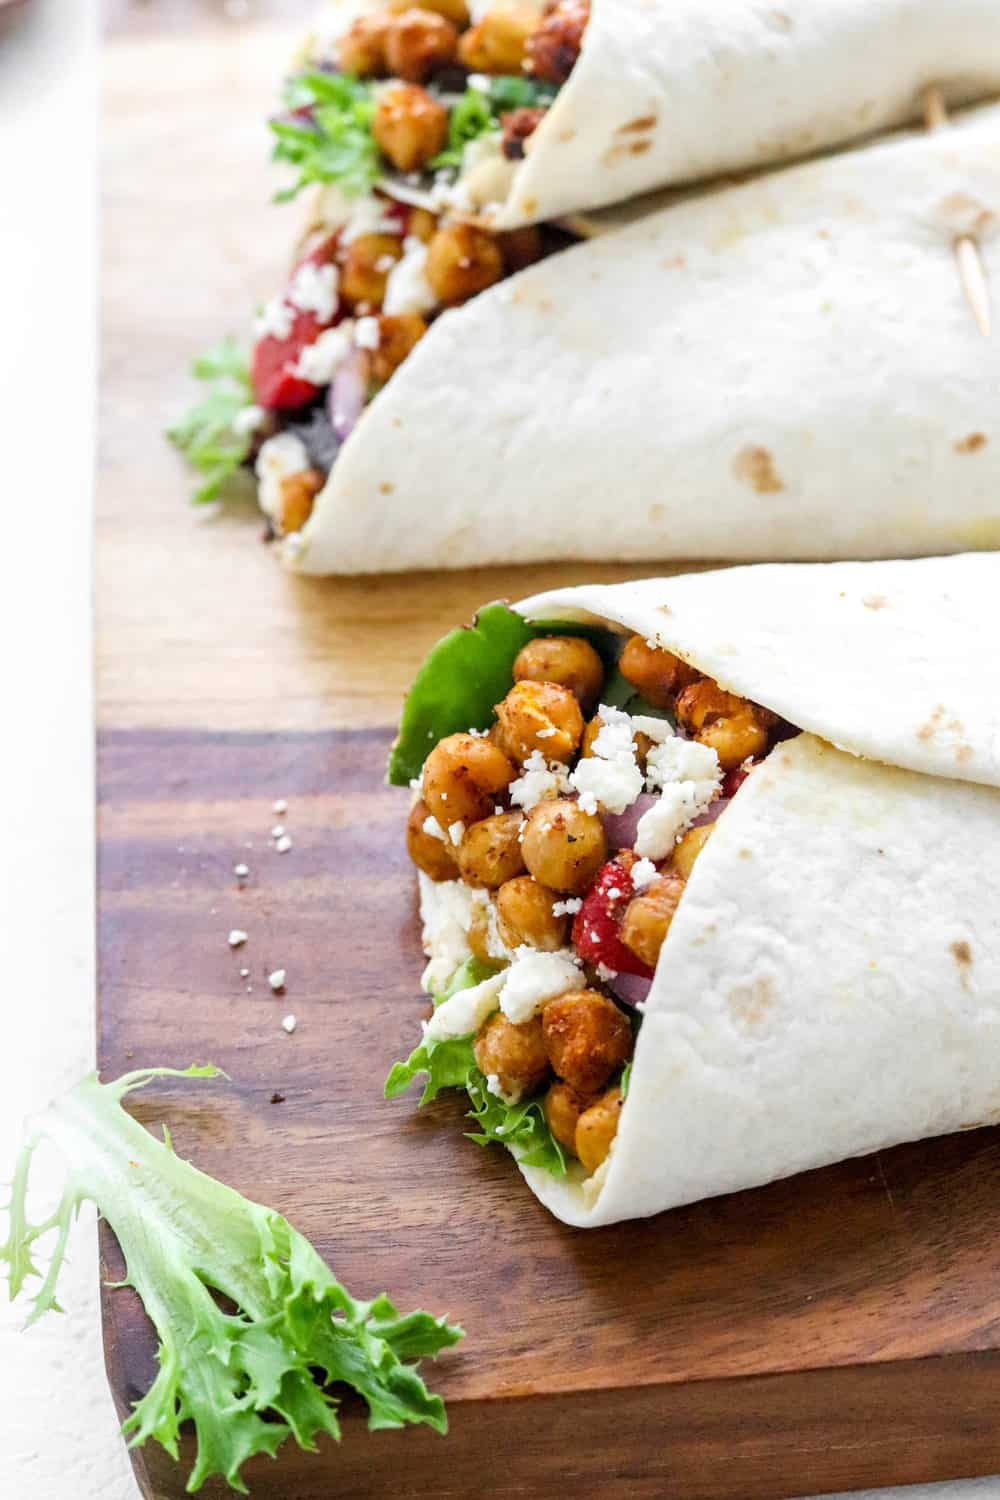 Close up of the end of a flour tortilla wrap folded and filled with crispy chickpeas, feta cheese, Lettuce and peppers on a wooden surface with a pice of lettuce in from to it and more wraps behind it.